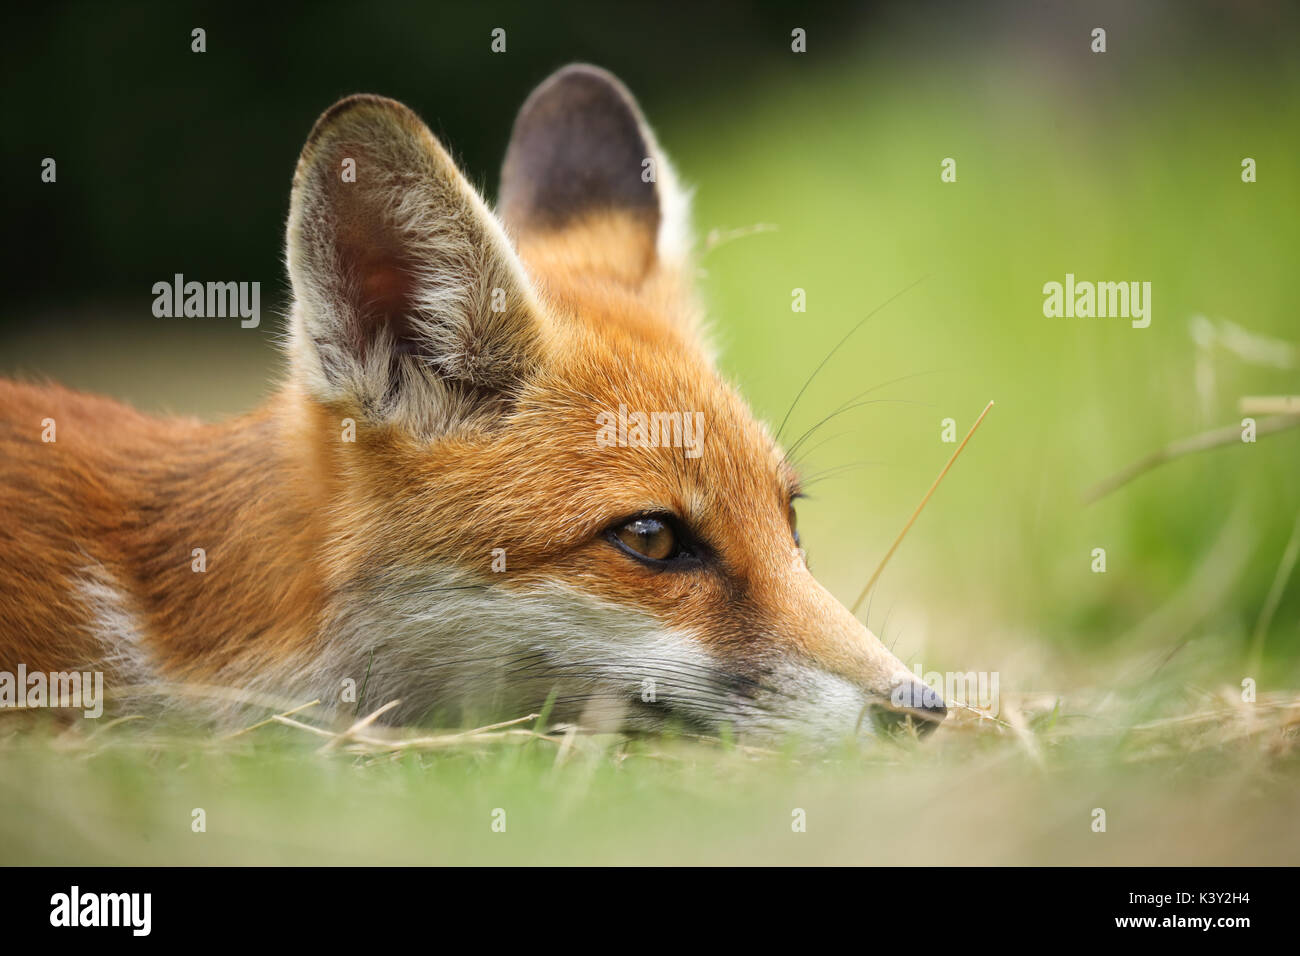 A young fox taking some time out to rest - Stock Image